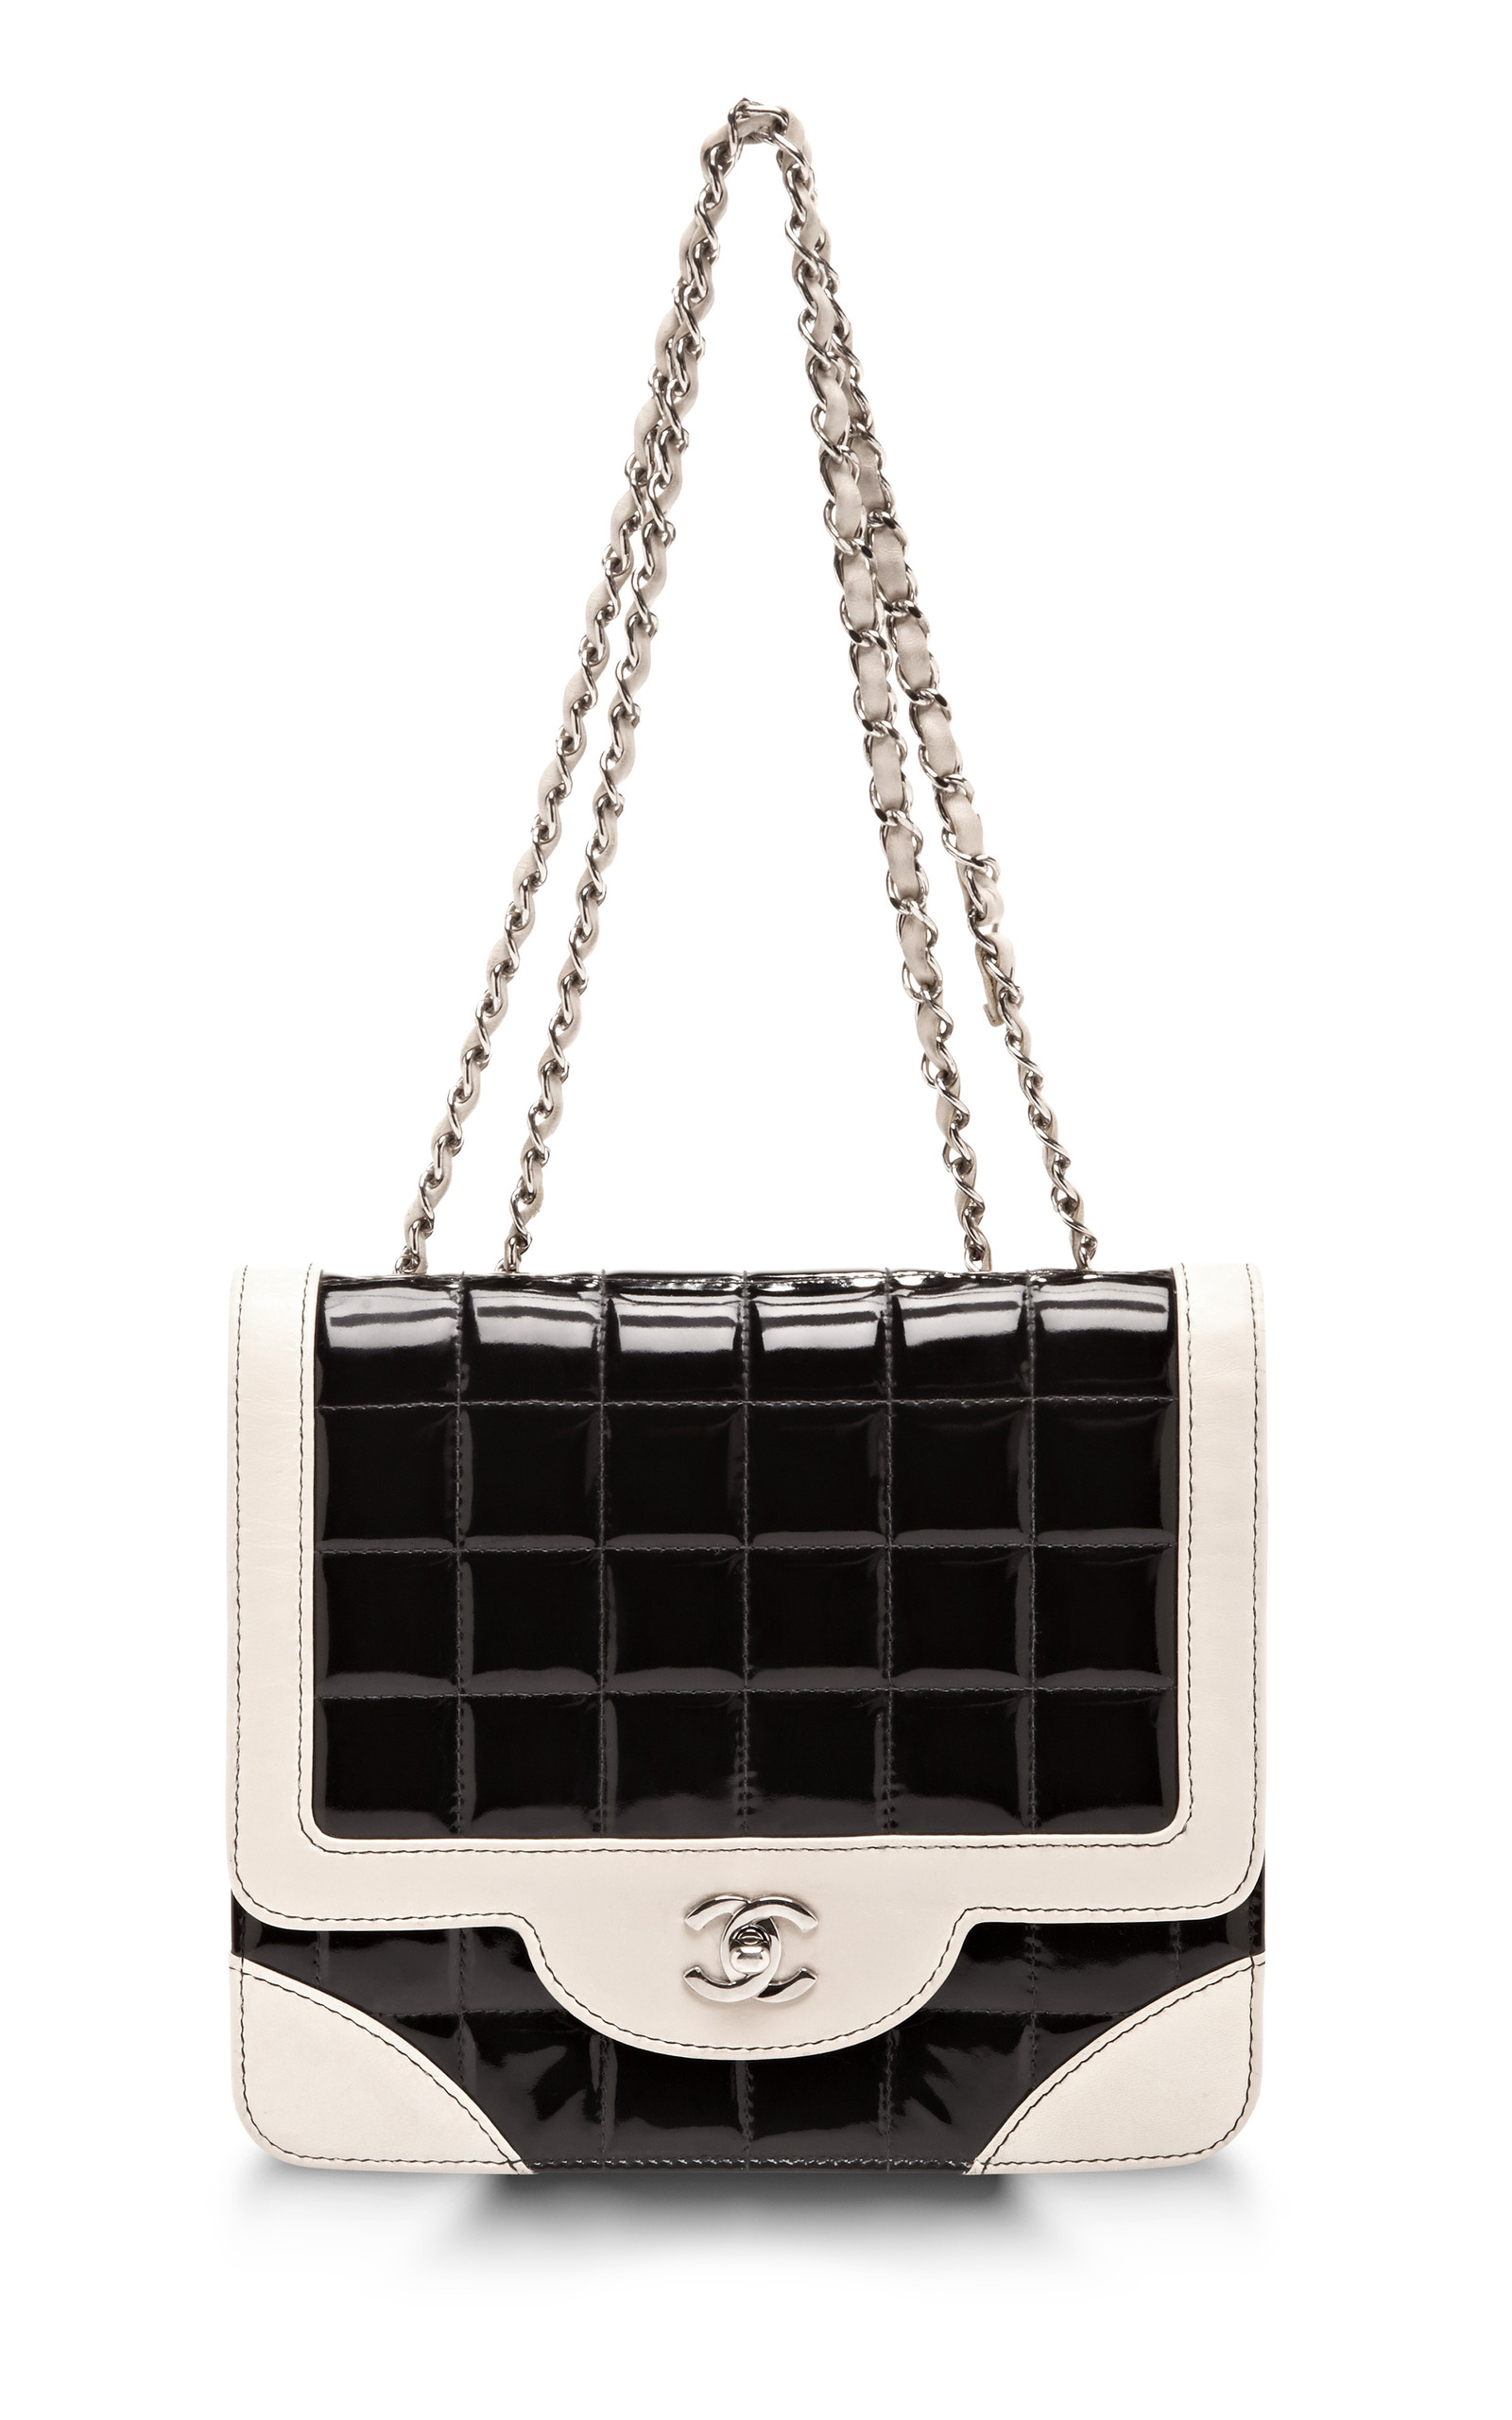 Vintage Chanel Black Patent With Cream Trim Bag By Moda